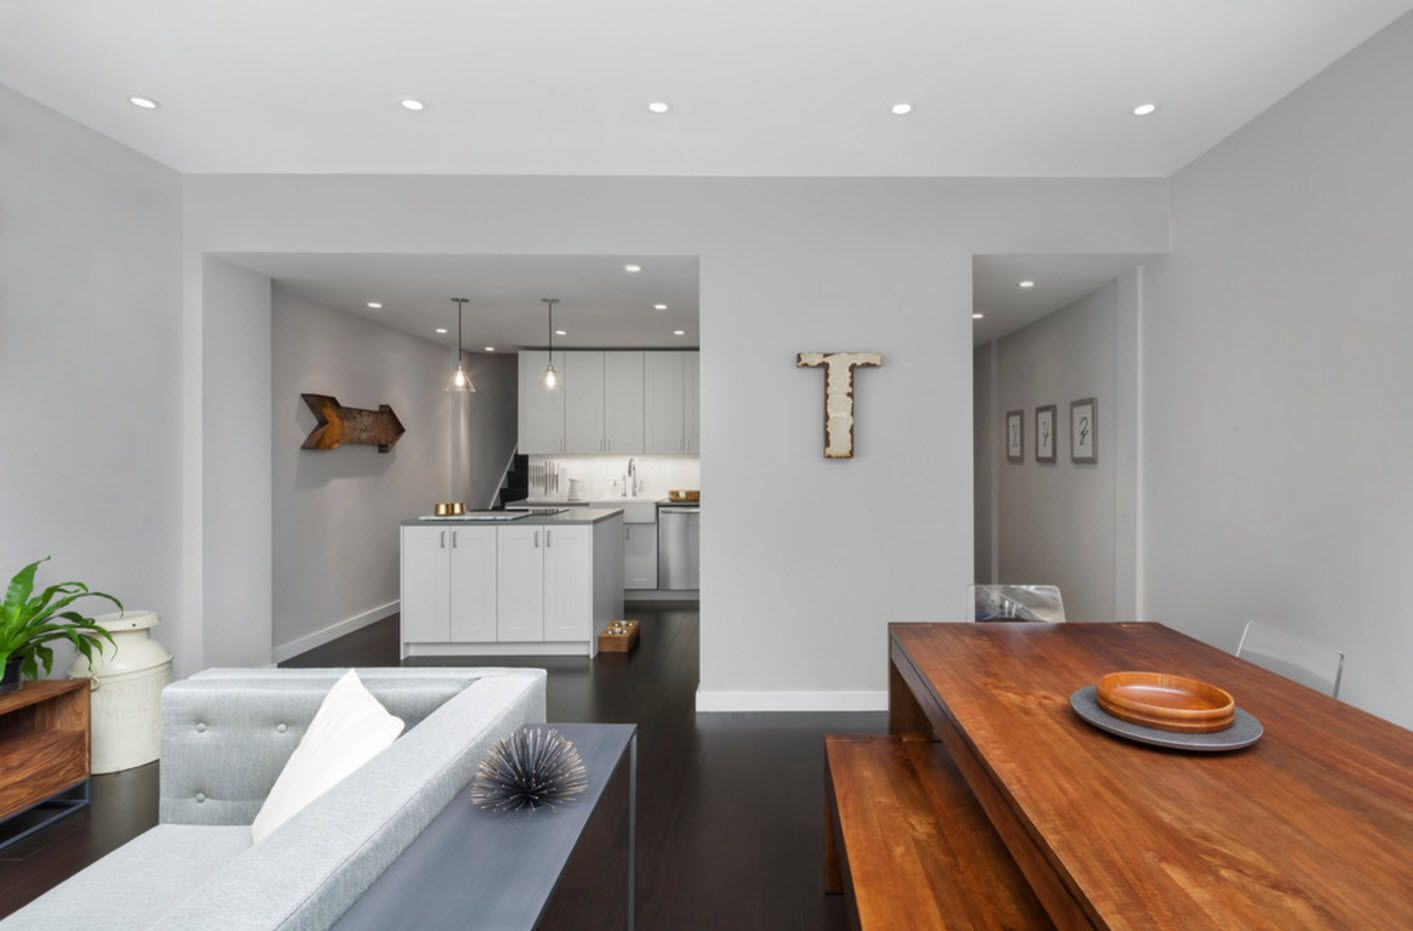 Wooden table and bench in the hi-tech white kitchen zone